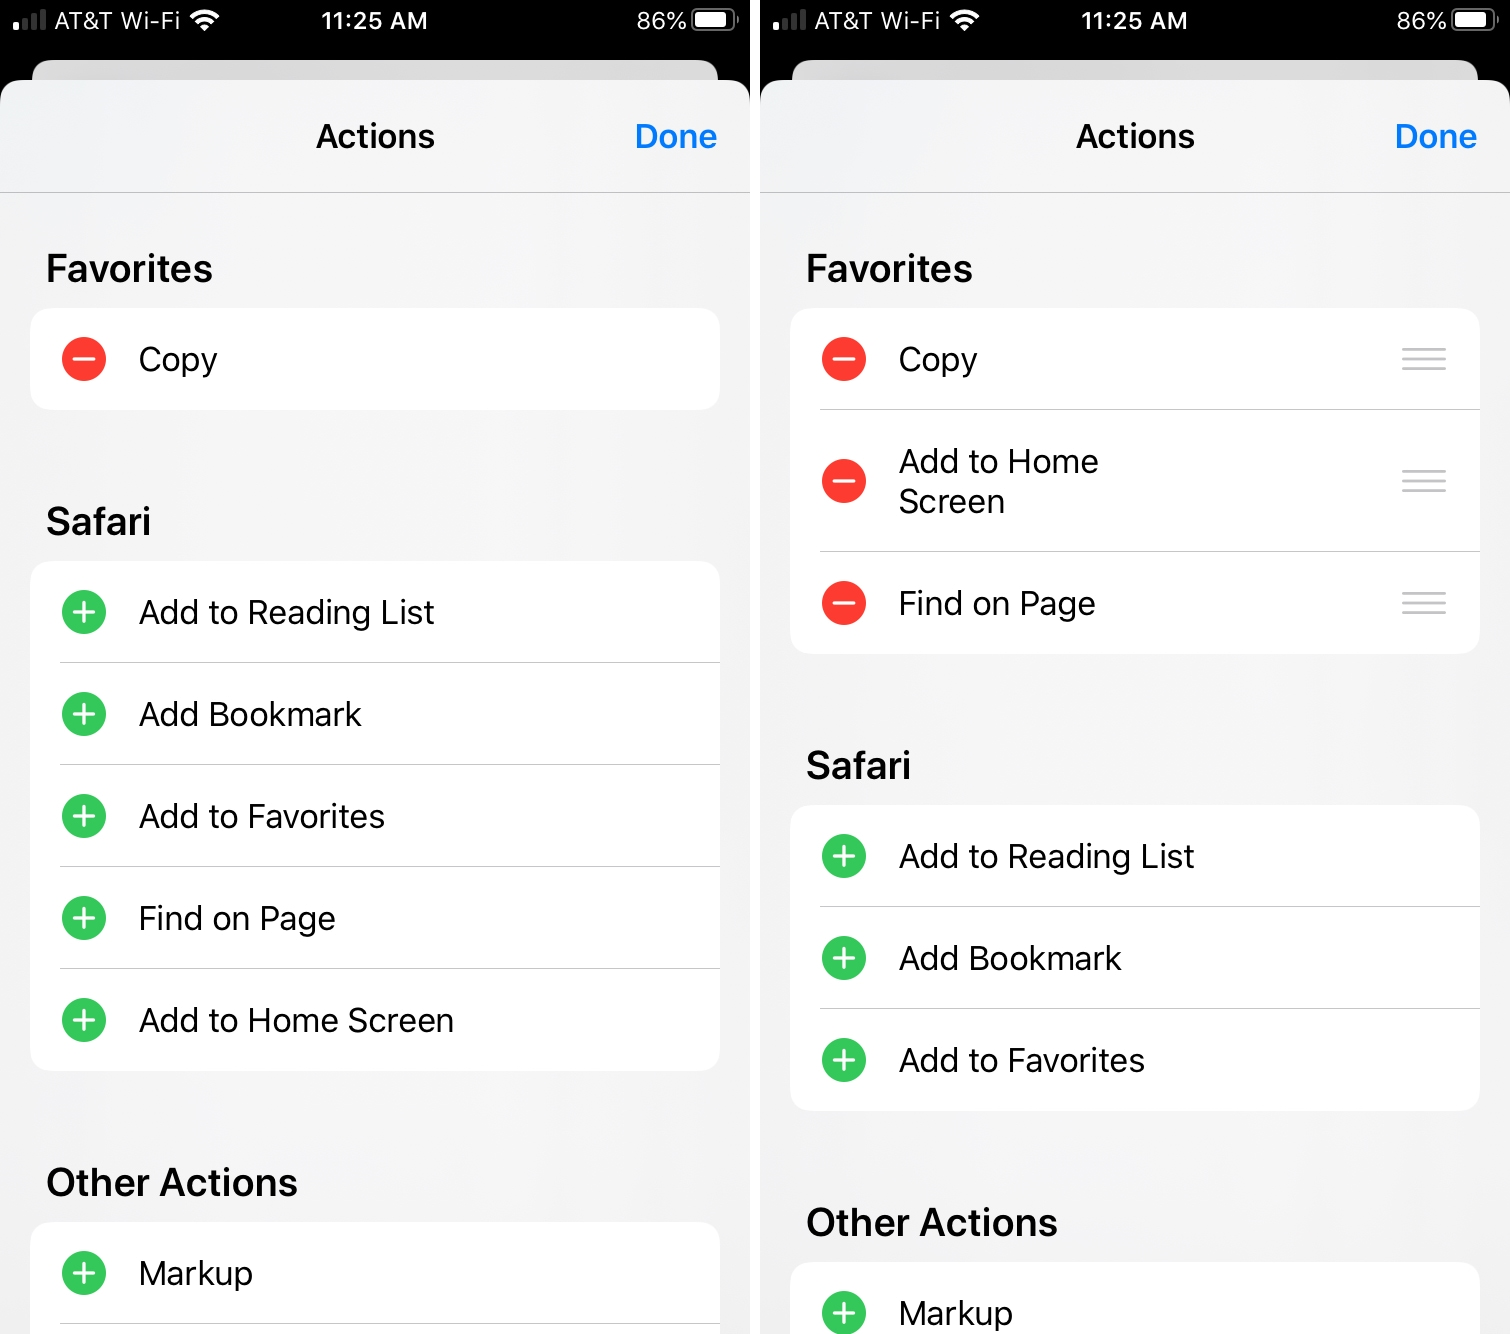 iPhone Customize Actions Share Sheet